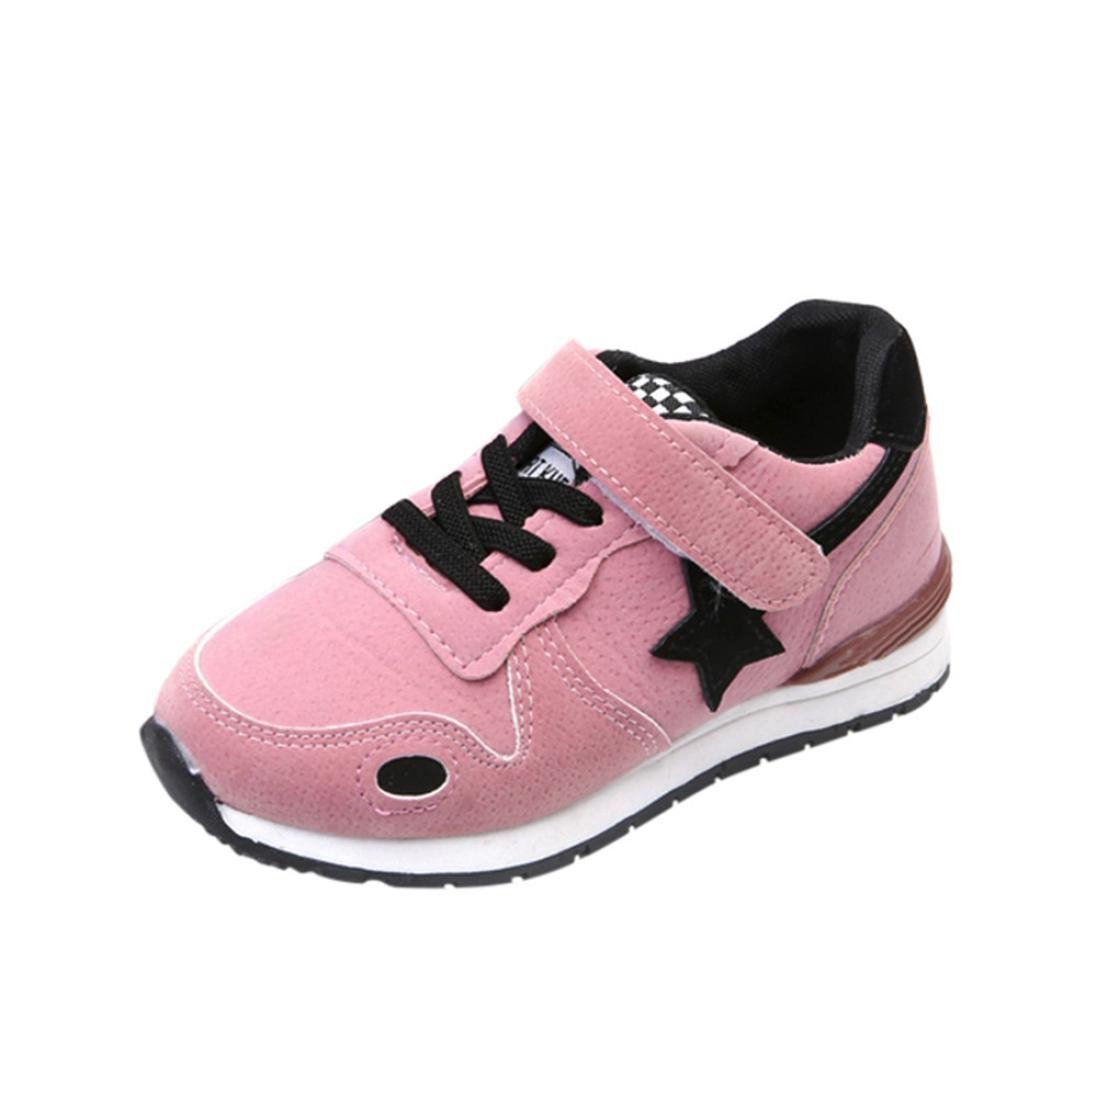 FEITONG Toddler Kids Sport Running Shoes Boys Girls Star Mesh Shoes Sneakers (US:6.5, Foot Length:5.5